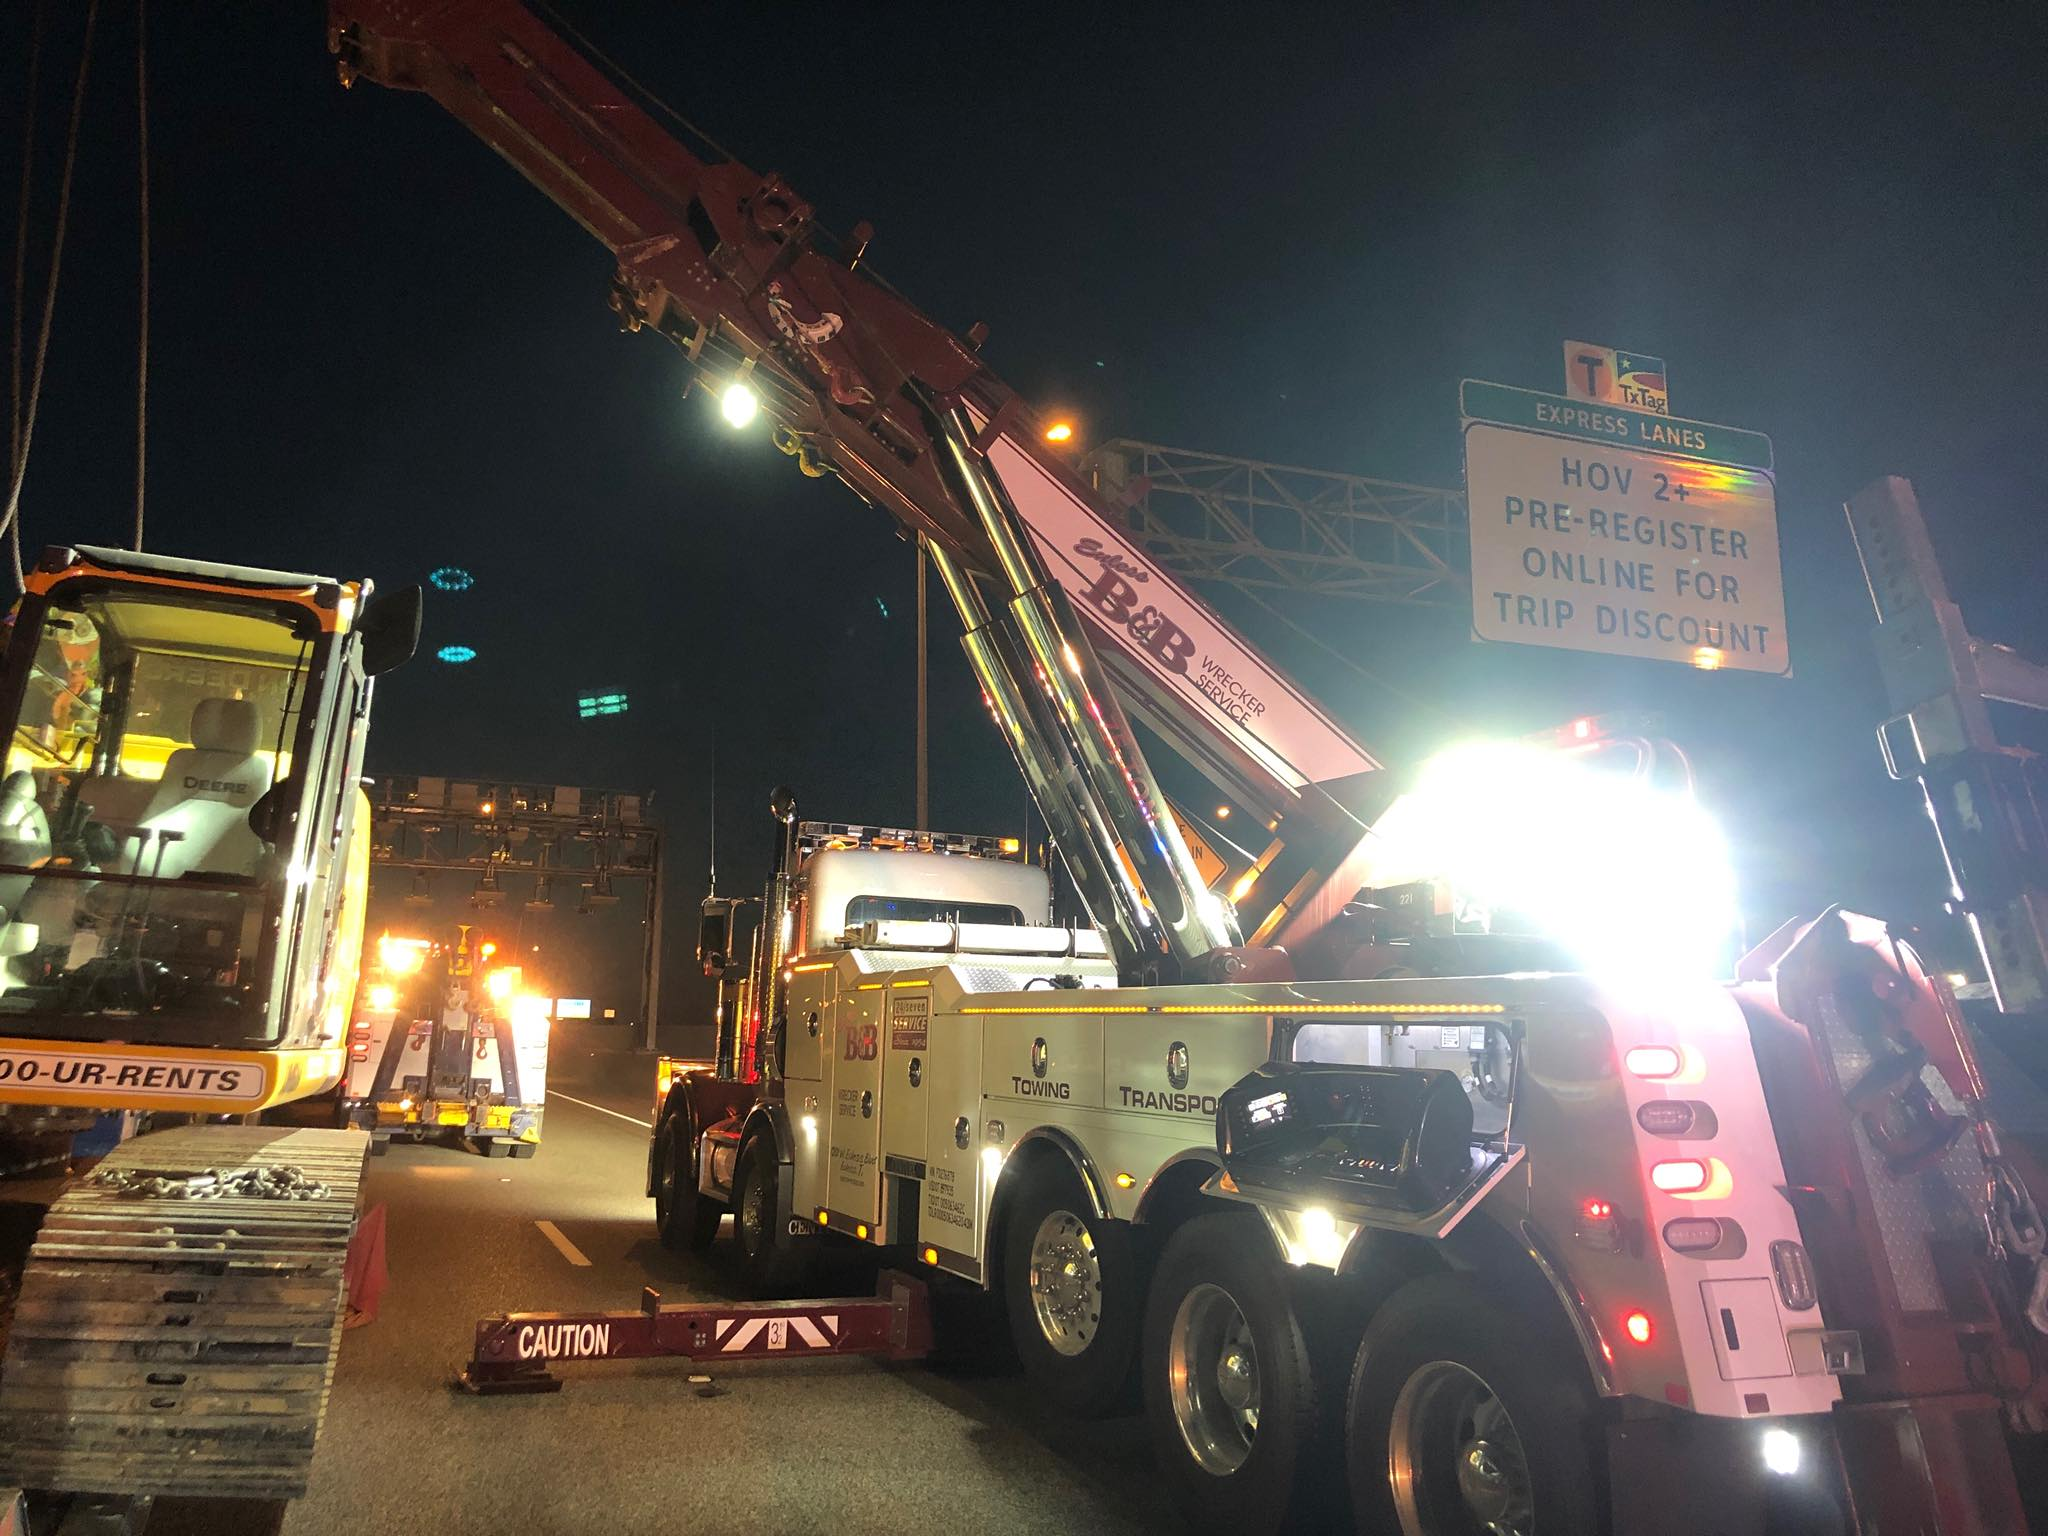 Euless B&B Wrecker Service using a crane to for heavy equipment towing after an 18-wheeler carrying a John Deer hit a wall and blew a front tire.